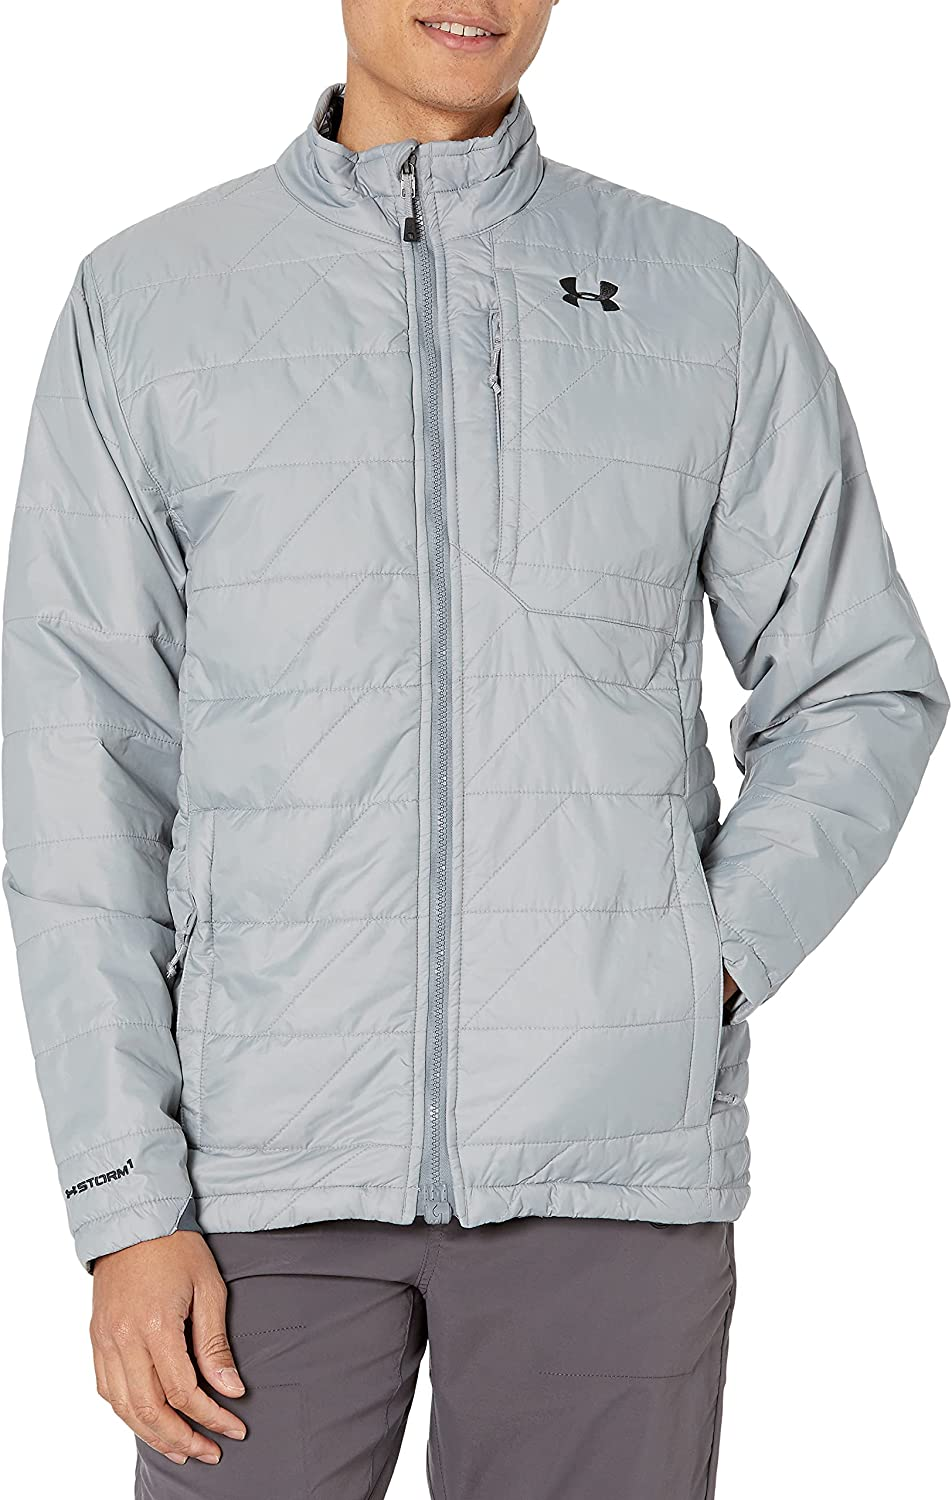 Under Armour Men's Ranking TOP7 Inventory cleanup selling sale Storm Micro Jacket Infrared ColdGear